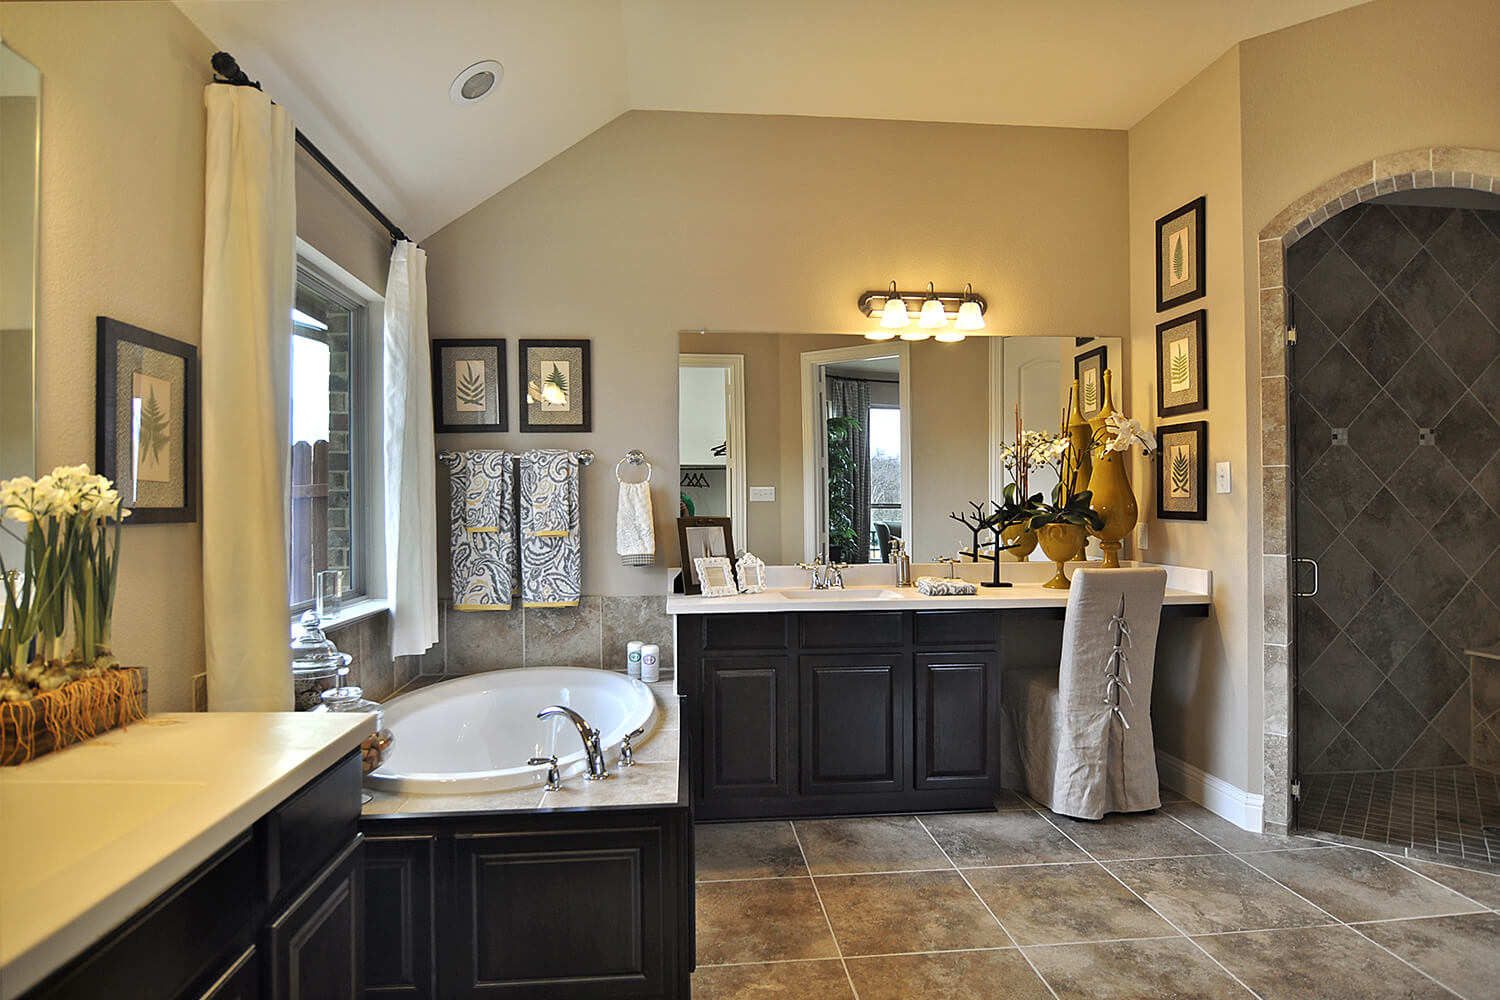 Master Bathroom - The Kilgore (2153 Plan)